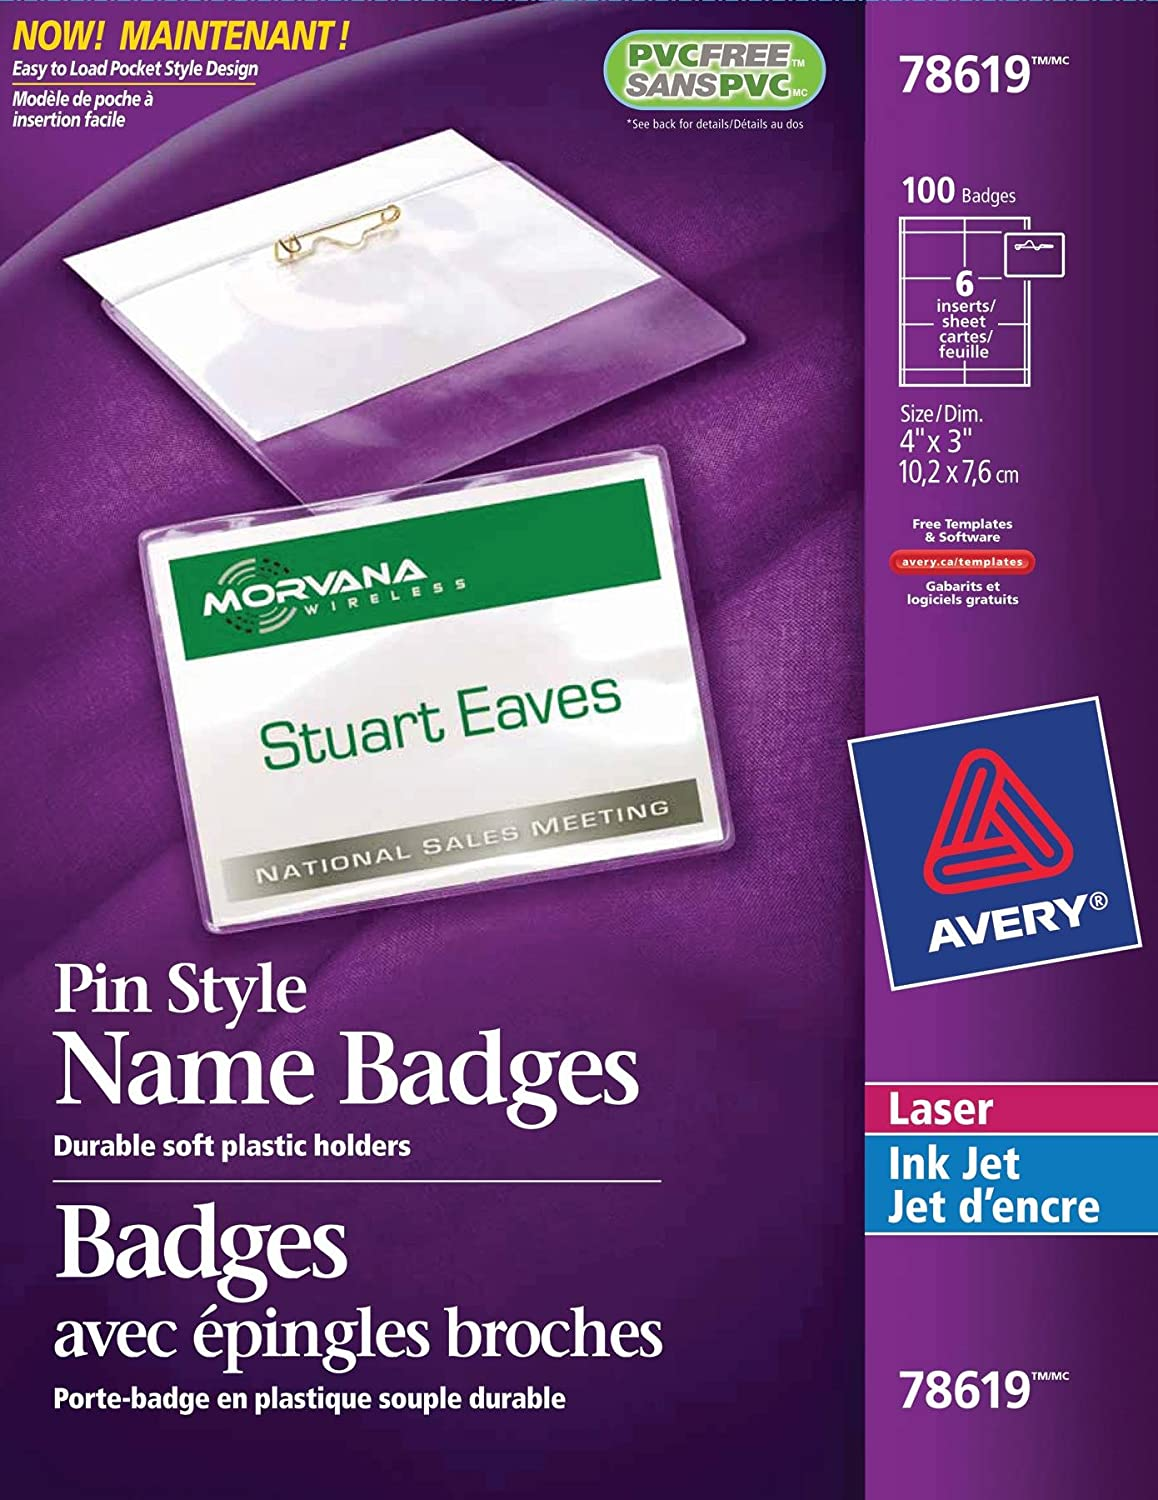 avery pin style name badge kit for laser and inkjet printers 4 x 3